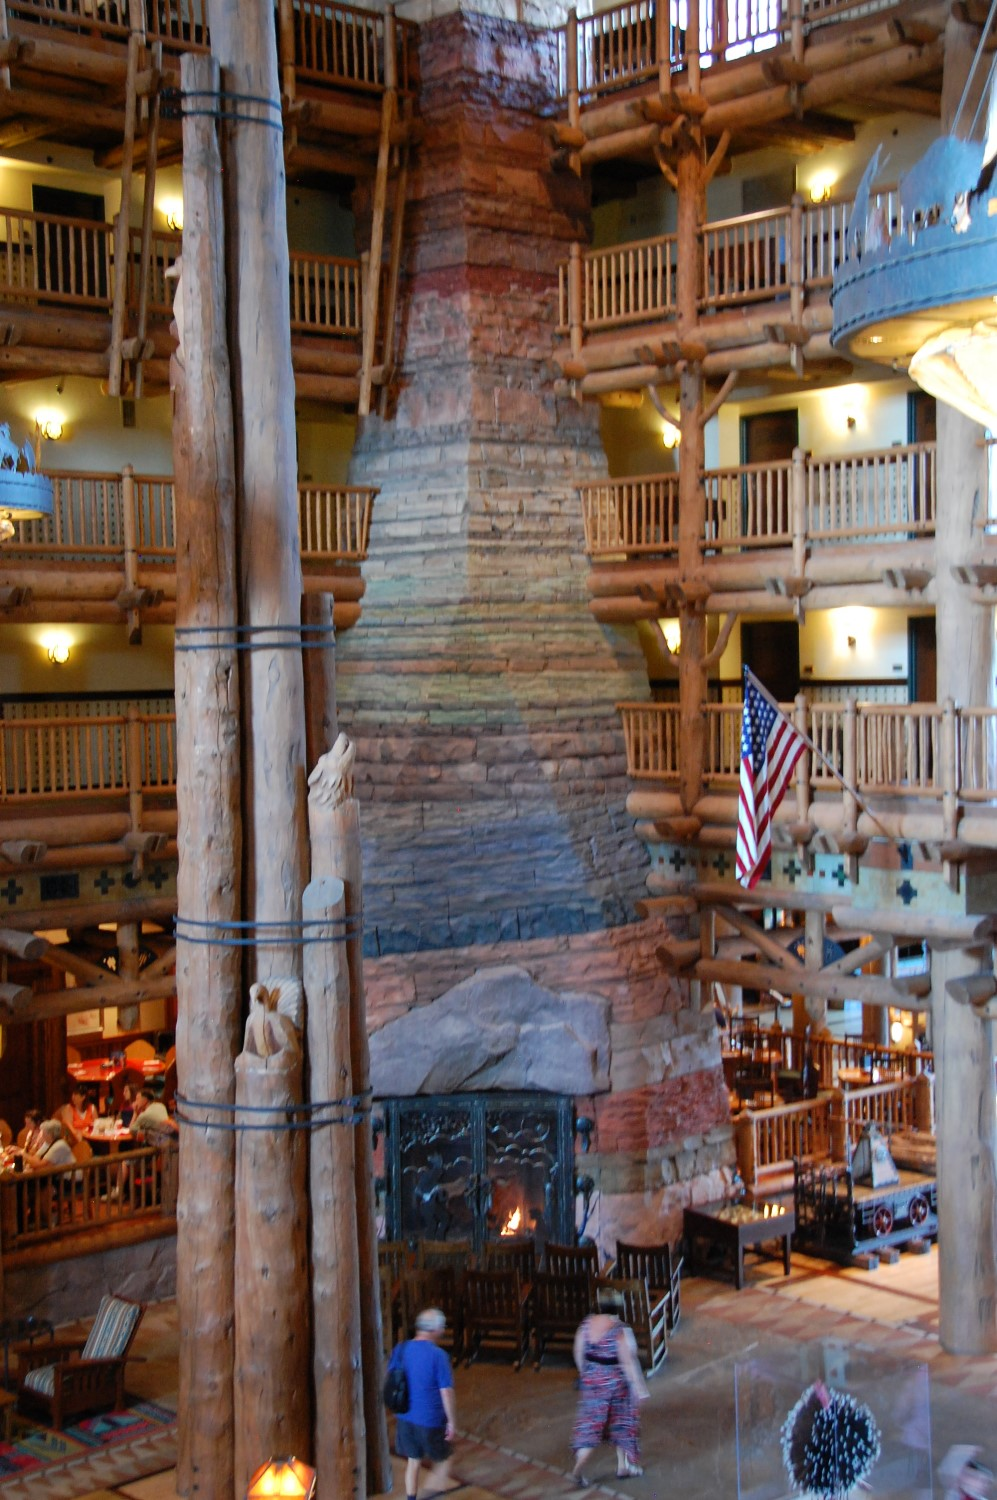 Grand Canyon Fireplace at the Wilderness Lodge